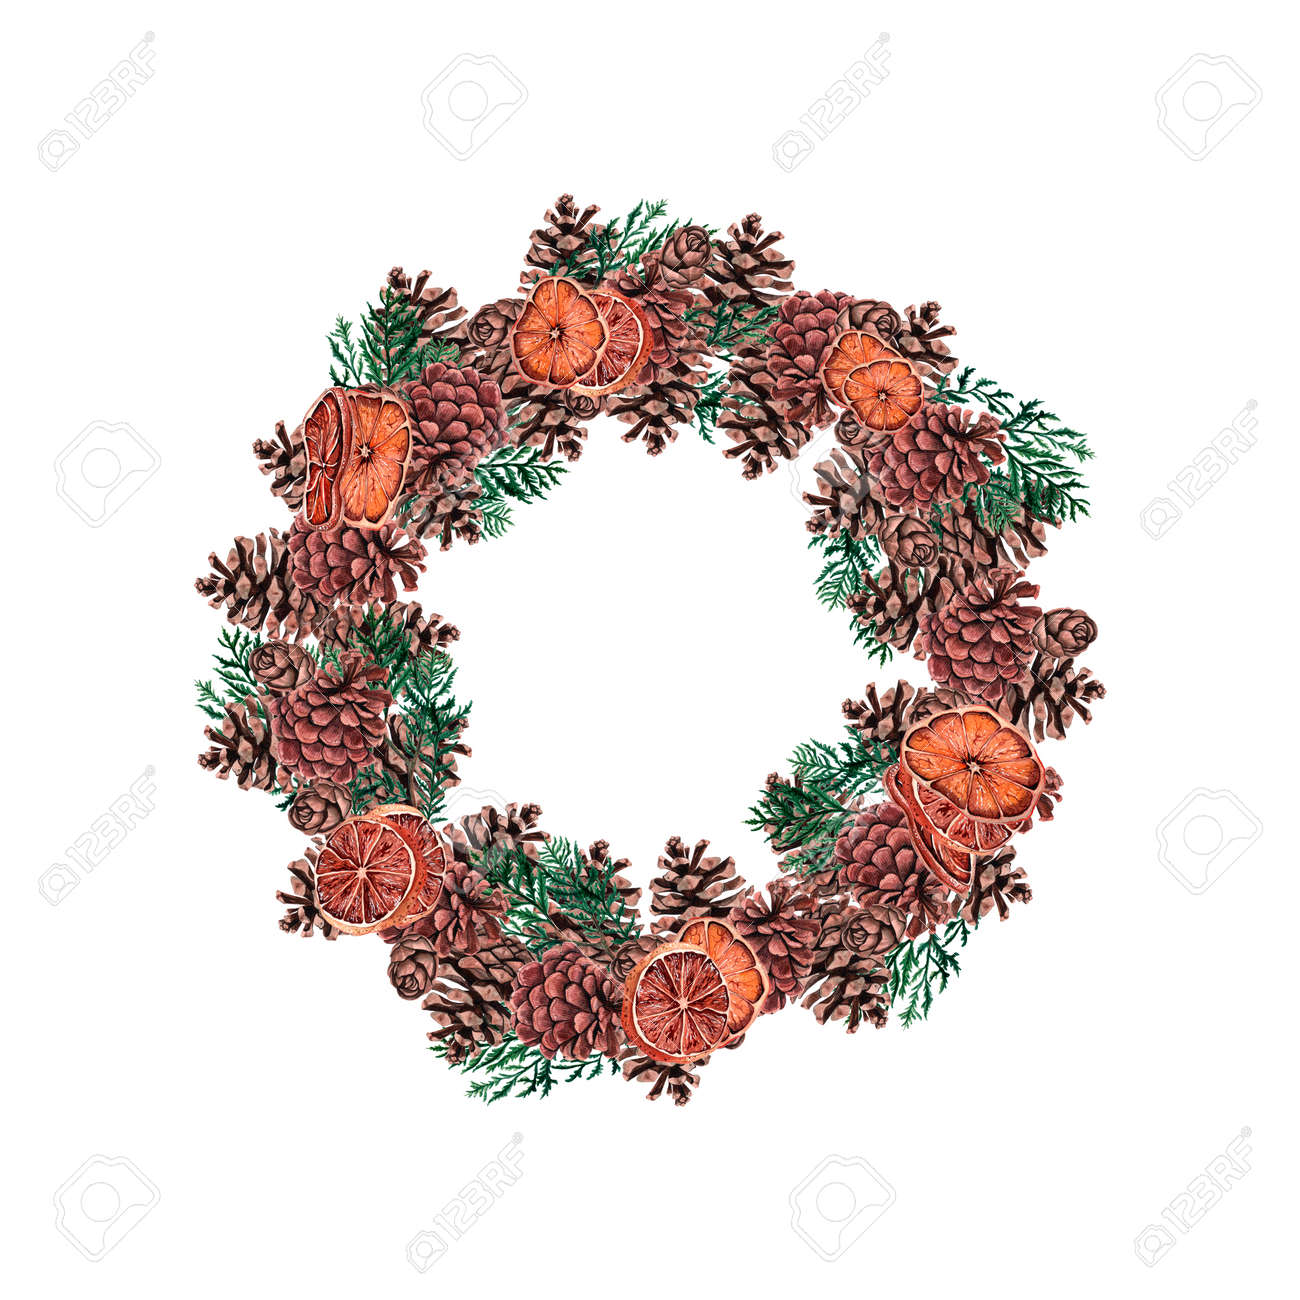 Watercolor Christmas Wreaths. Christmas Decorations With Festive ...